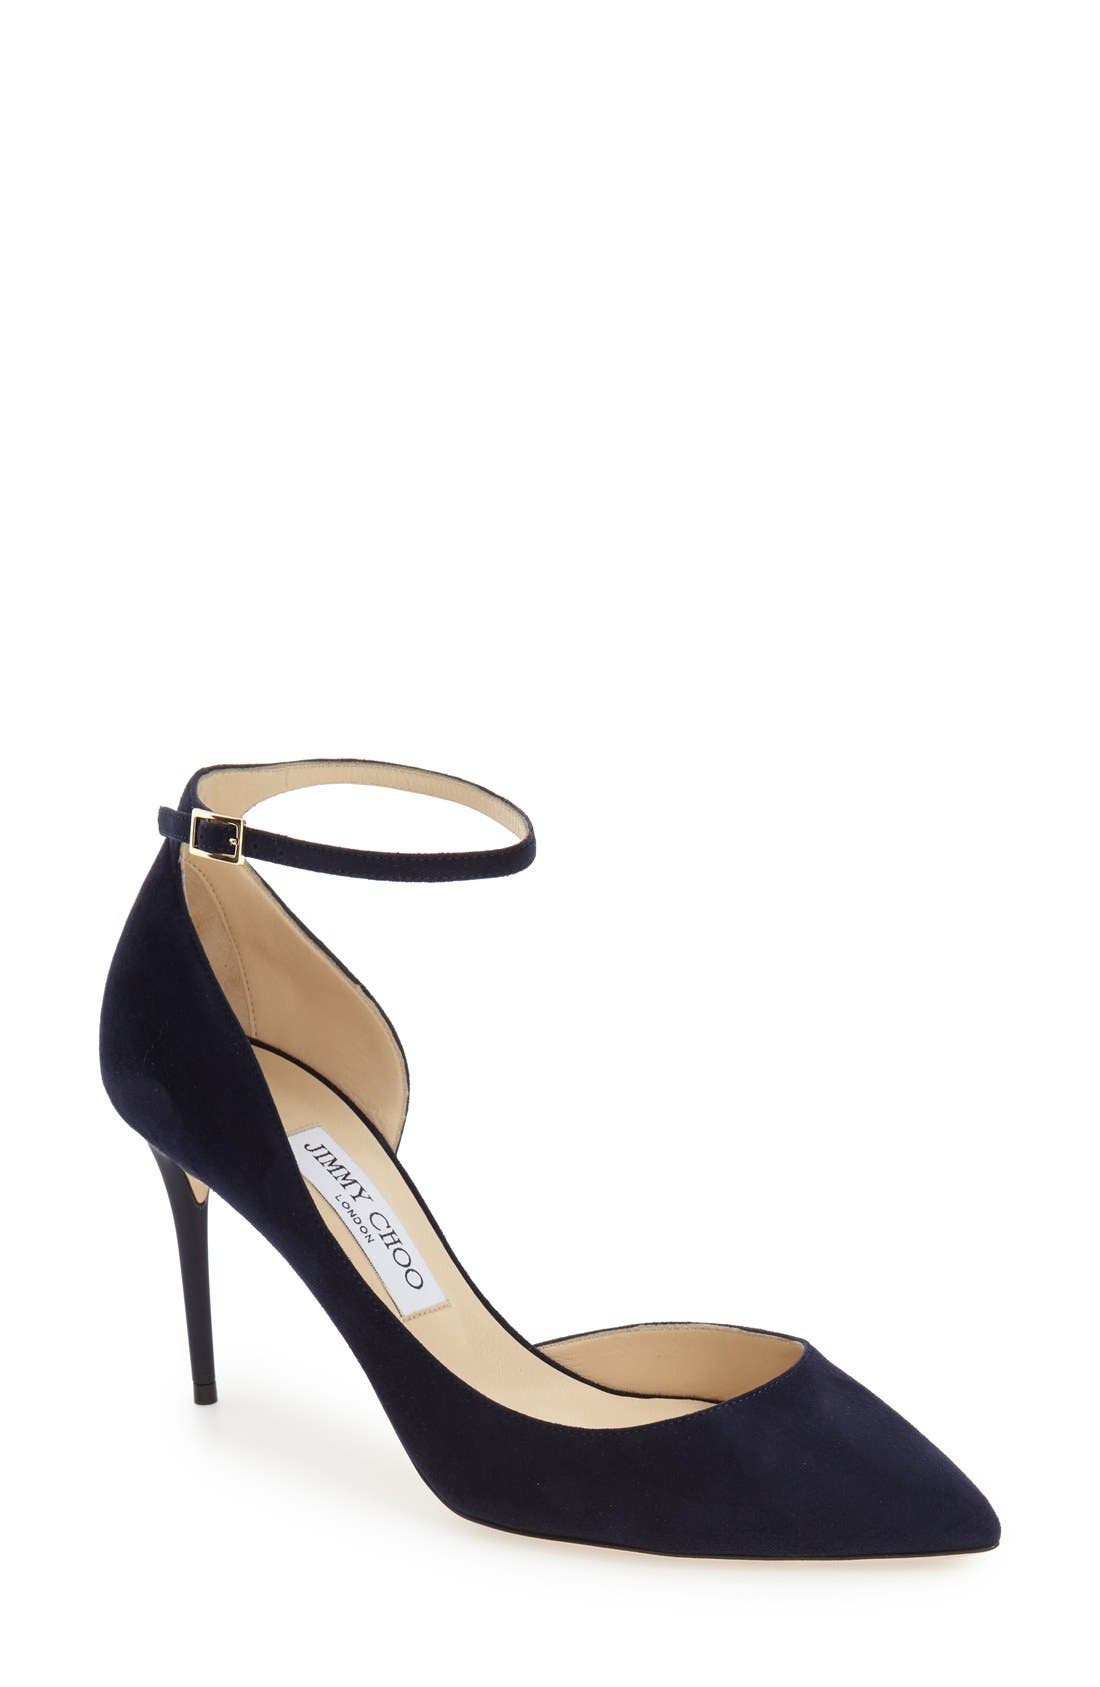 JIMMY CHOO 'Lucy' Half d'Orsay Pointy Toe Pump, Main, color, 410